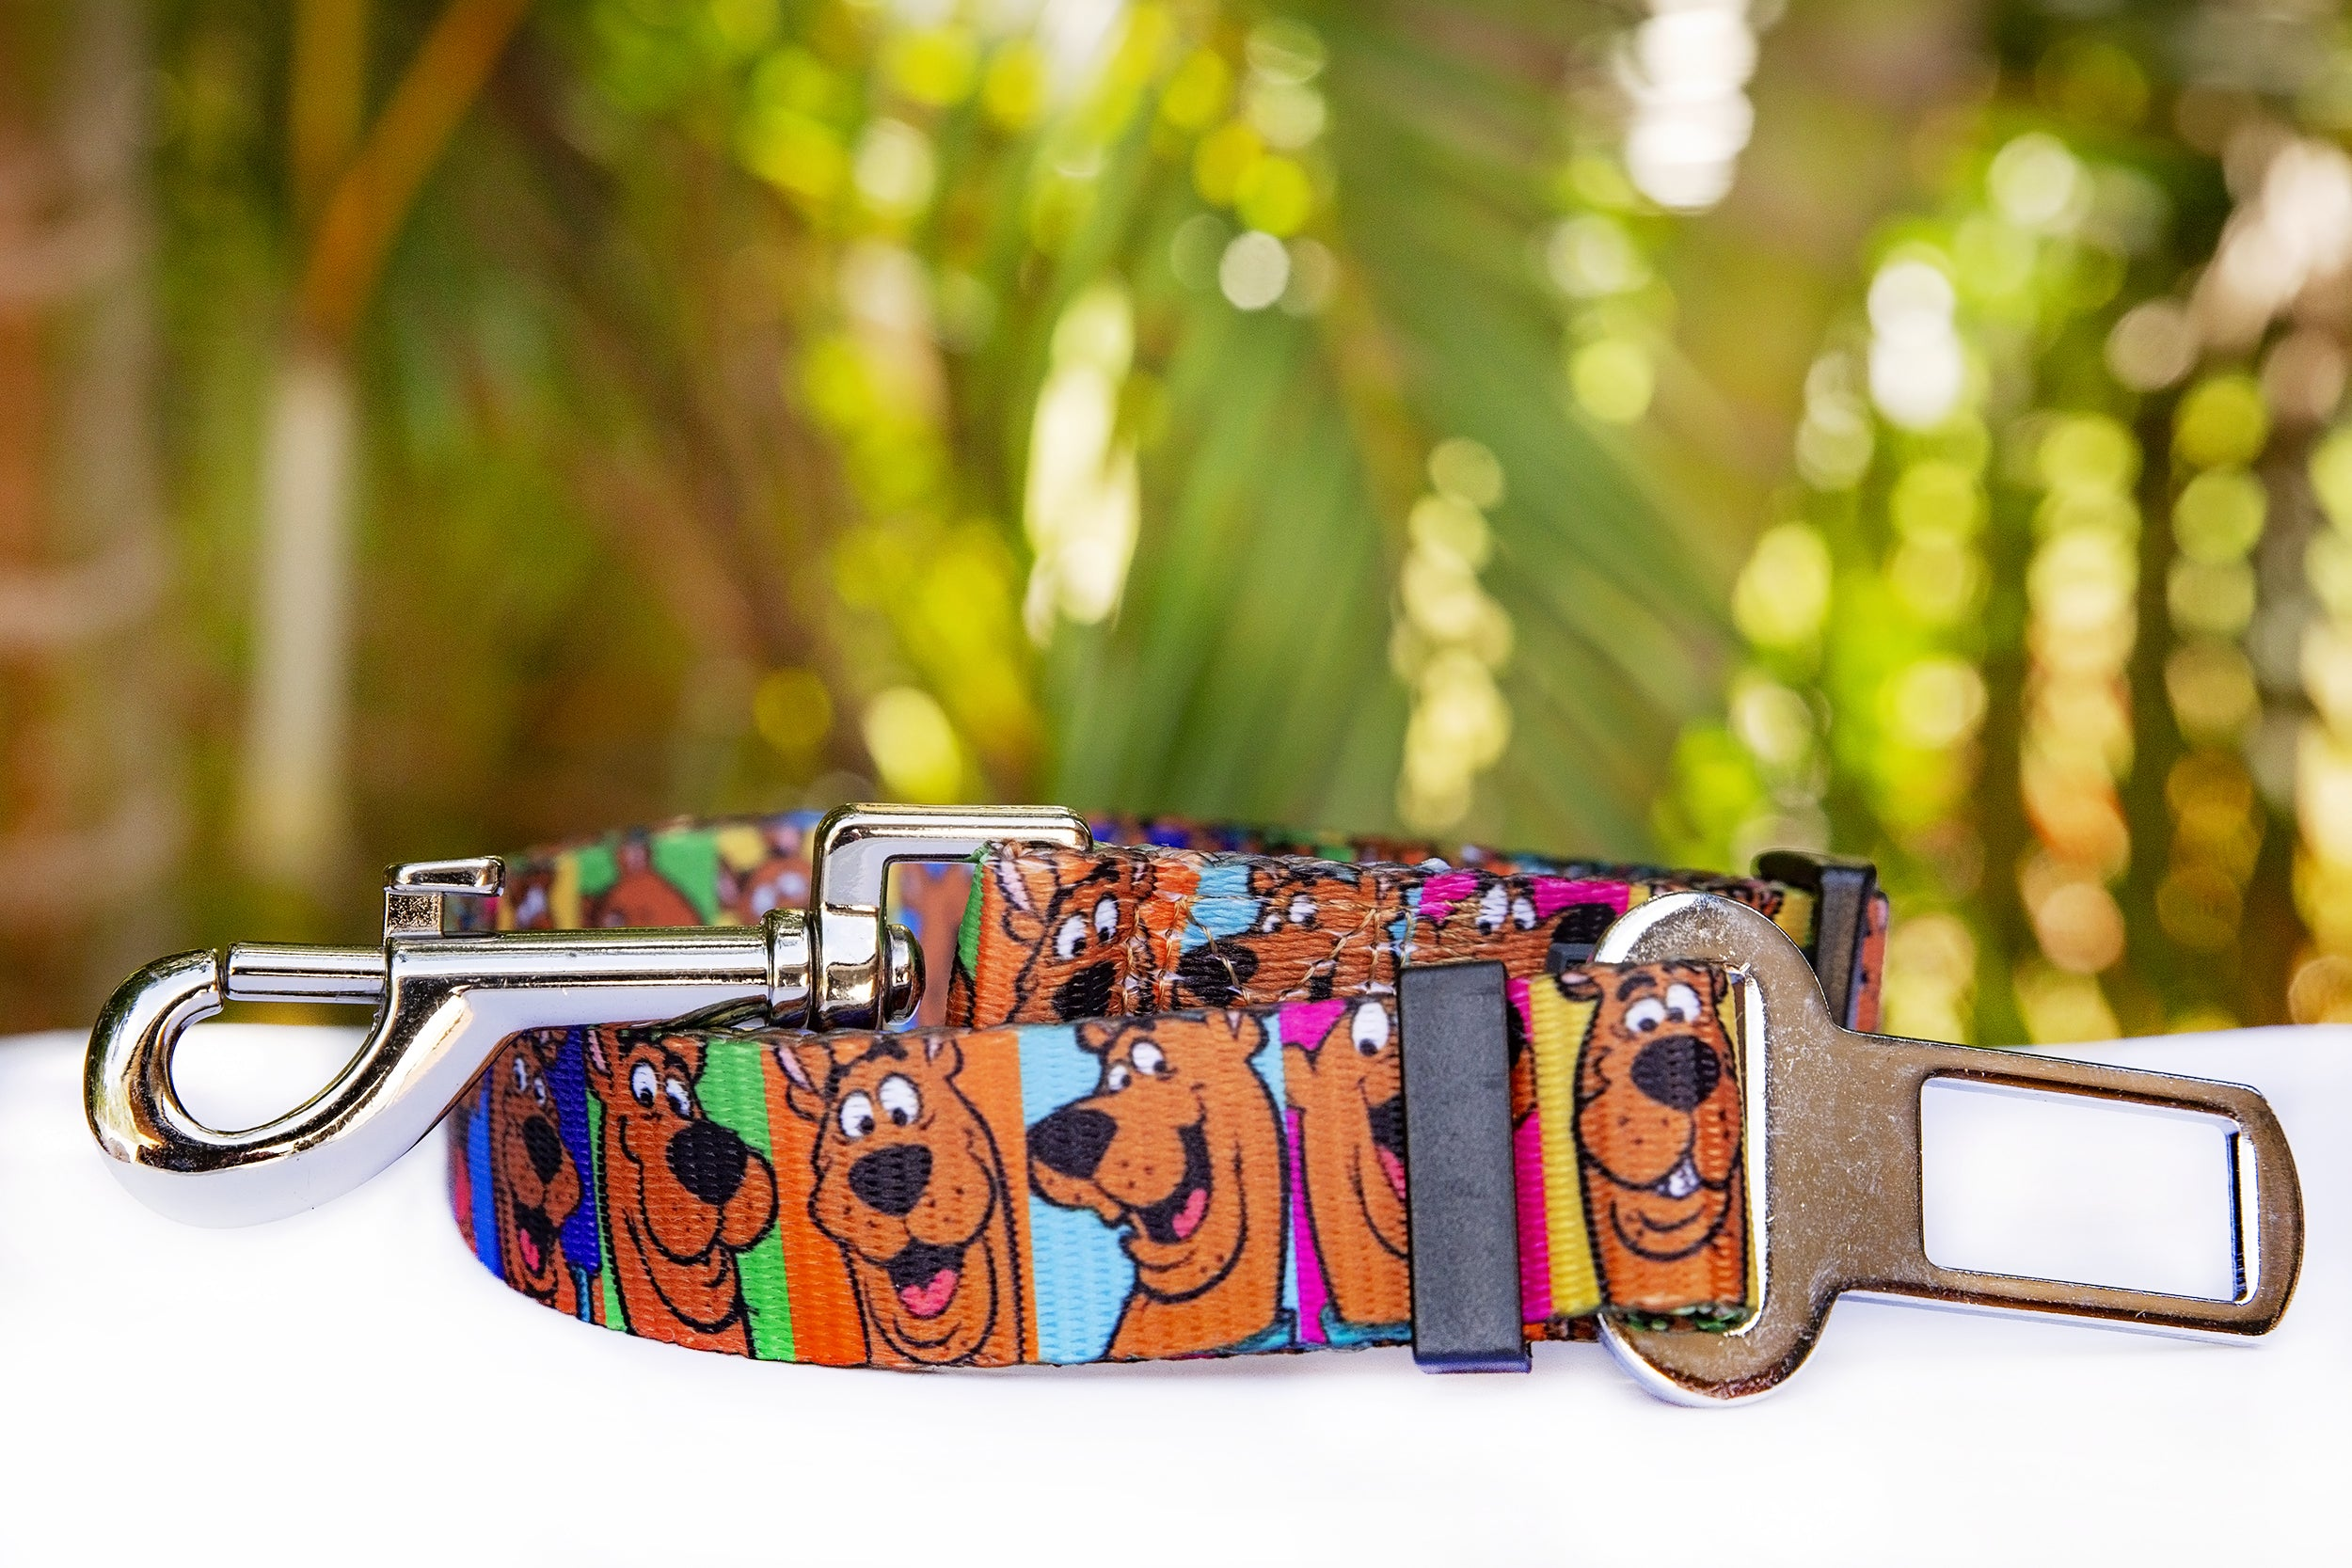 Dog Car Seatbelt / Dog Car Restraint Tether - Scooby Doo (Premade)-Dizzy Dog Collars